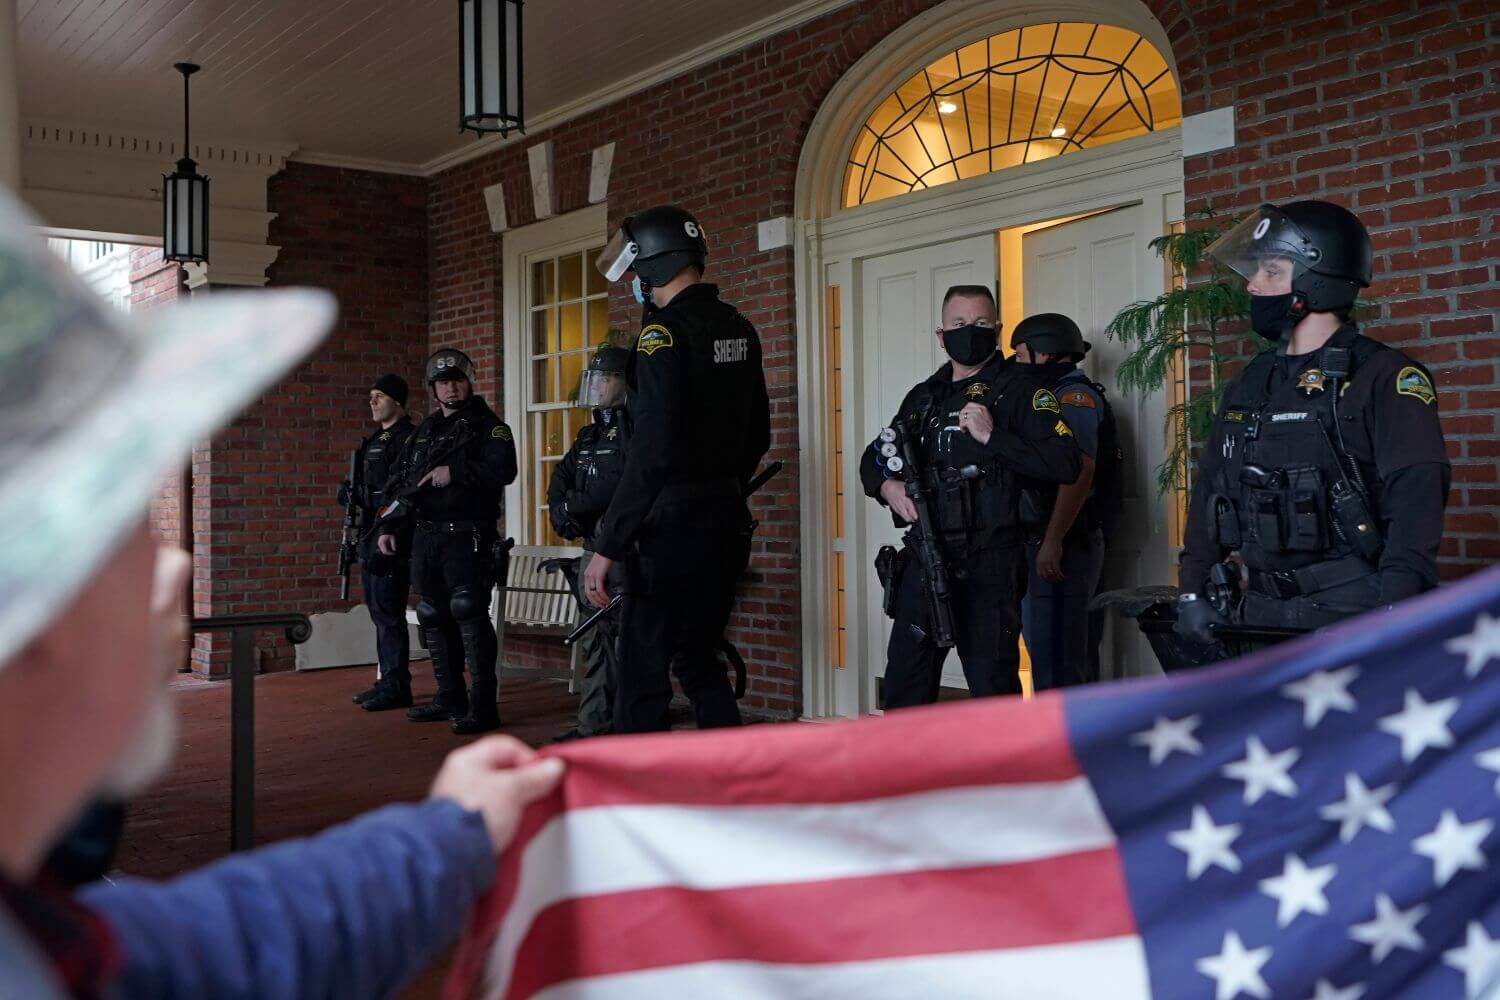 In the wake of insurrection, Washington lawmakers look for options to derail ad hoc militias